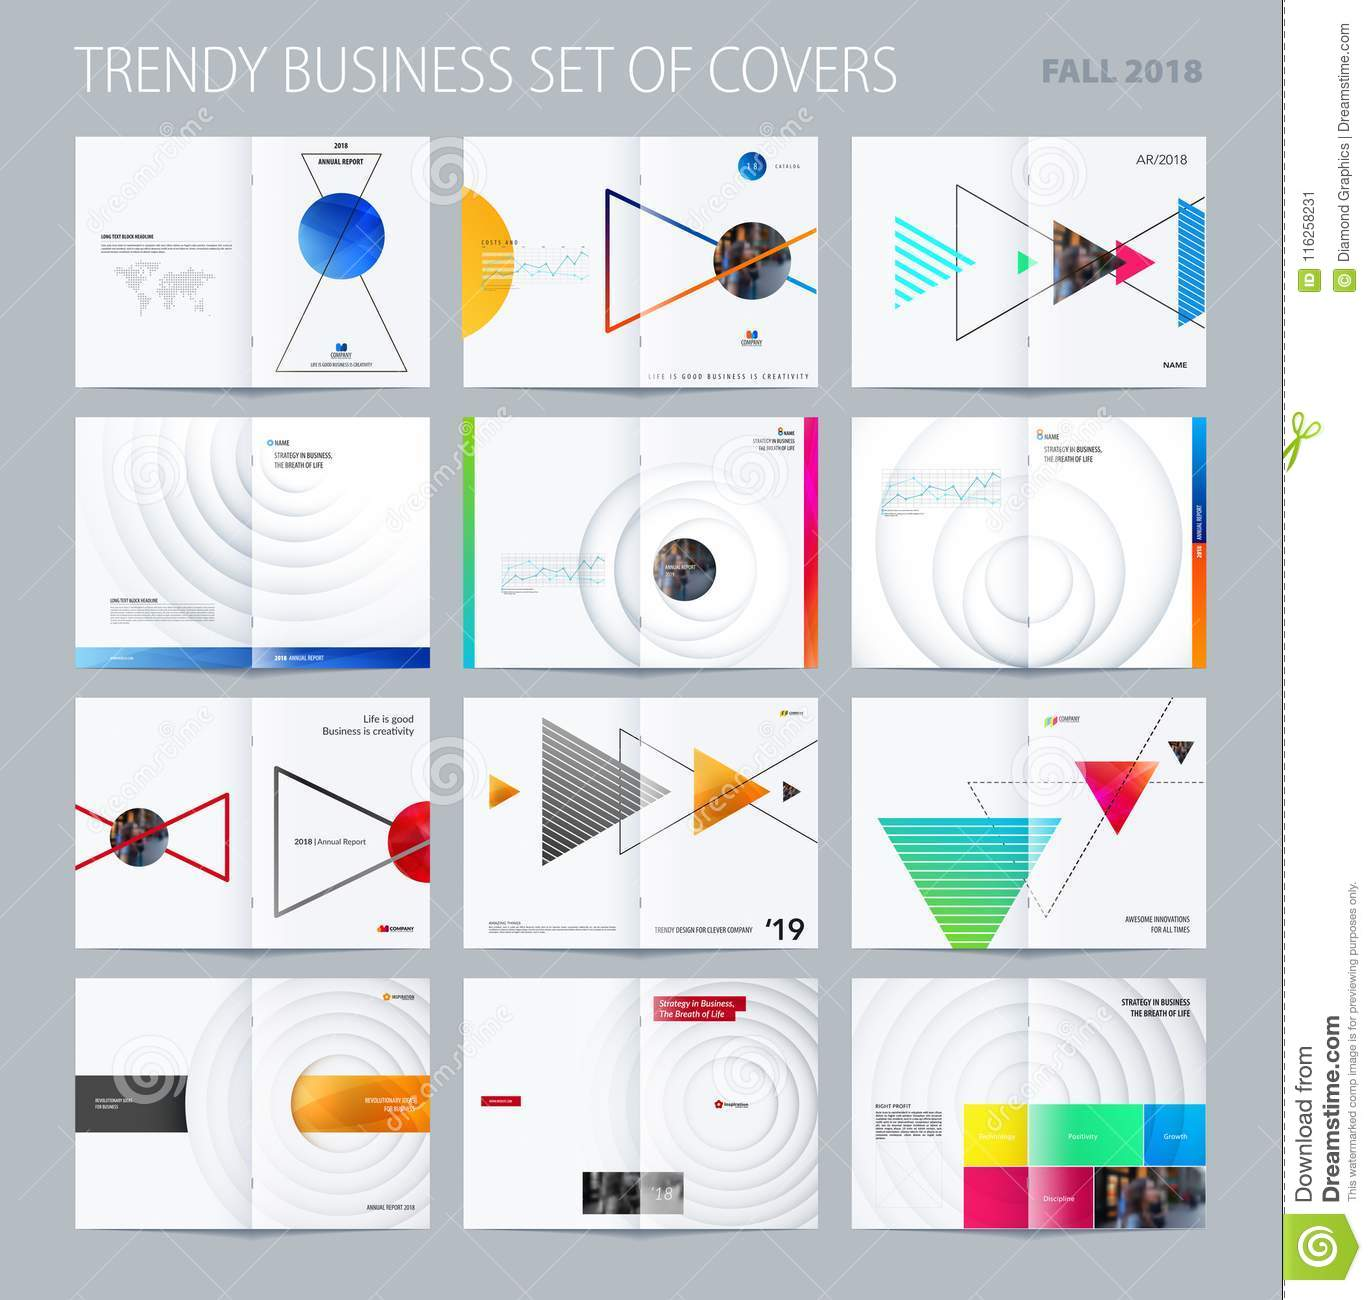 Abstract double-page brochure design style with colourful triangles for branding. Business vector presentation broadside